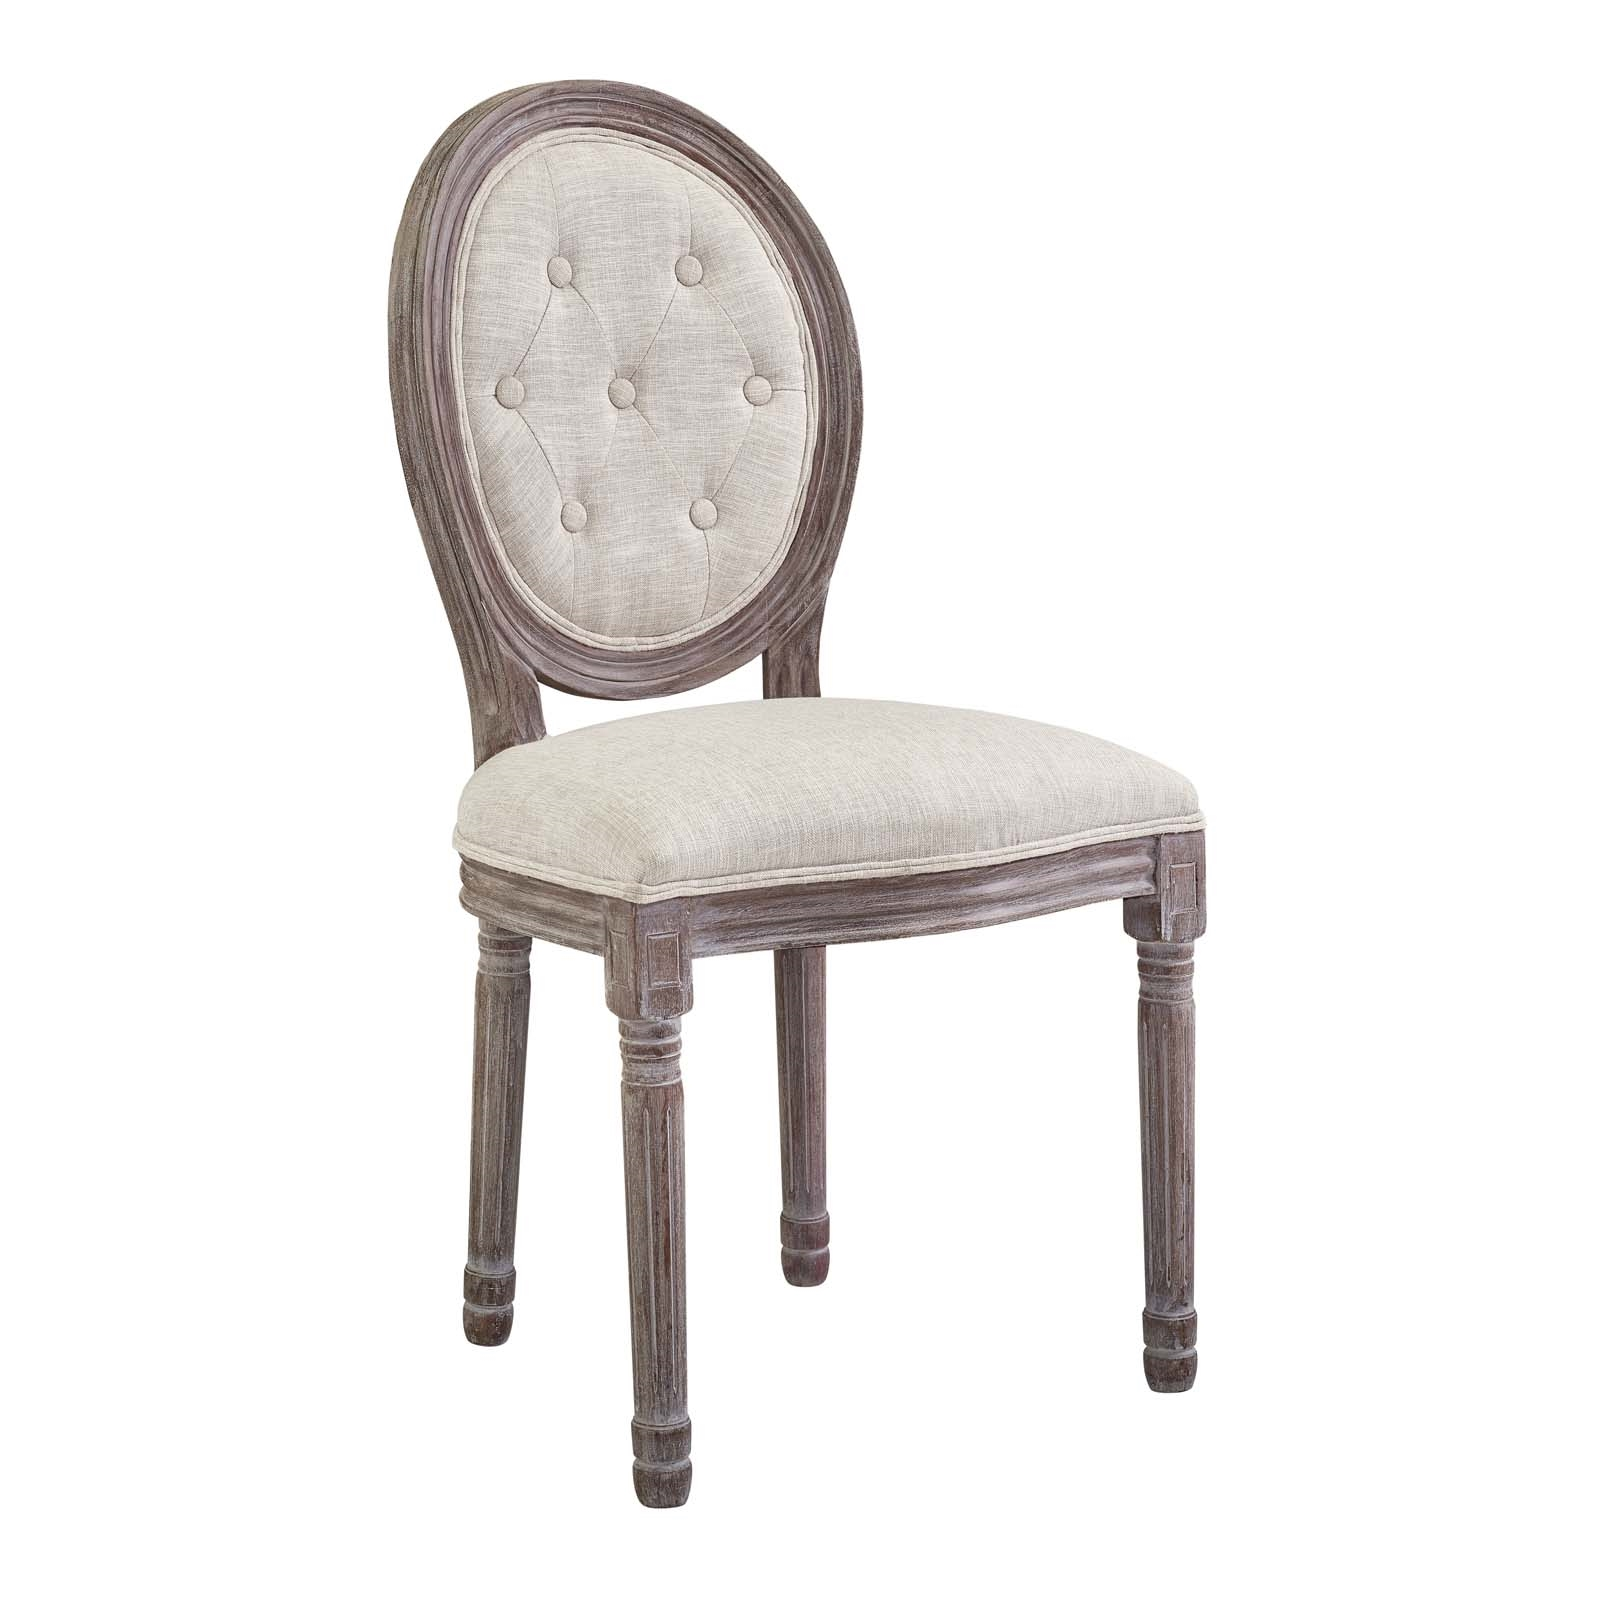 Arise Vintage French Upholstered Fabric Dining Side Chair in Beige